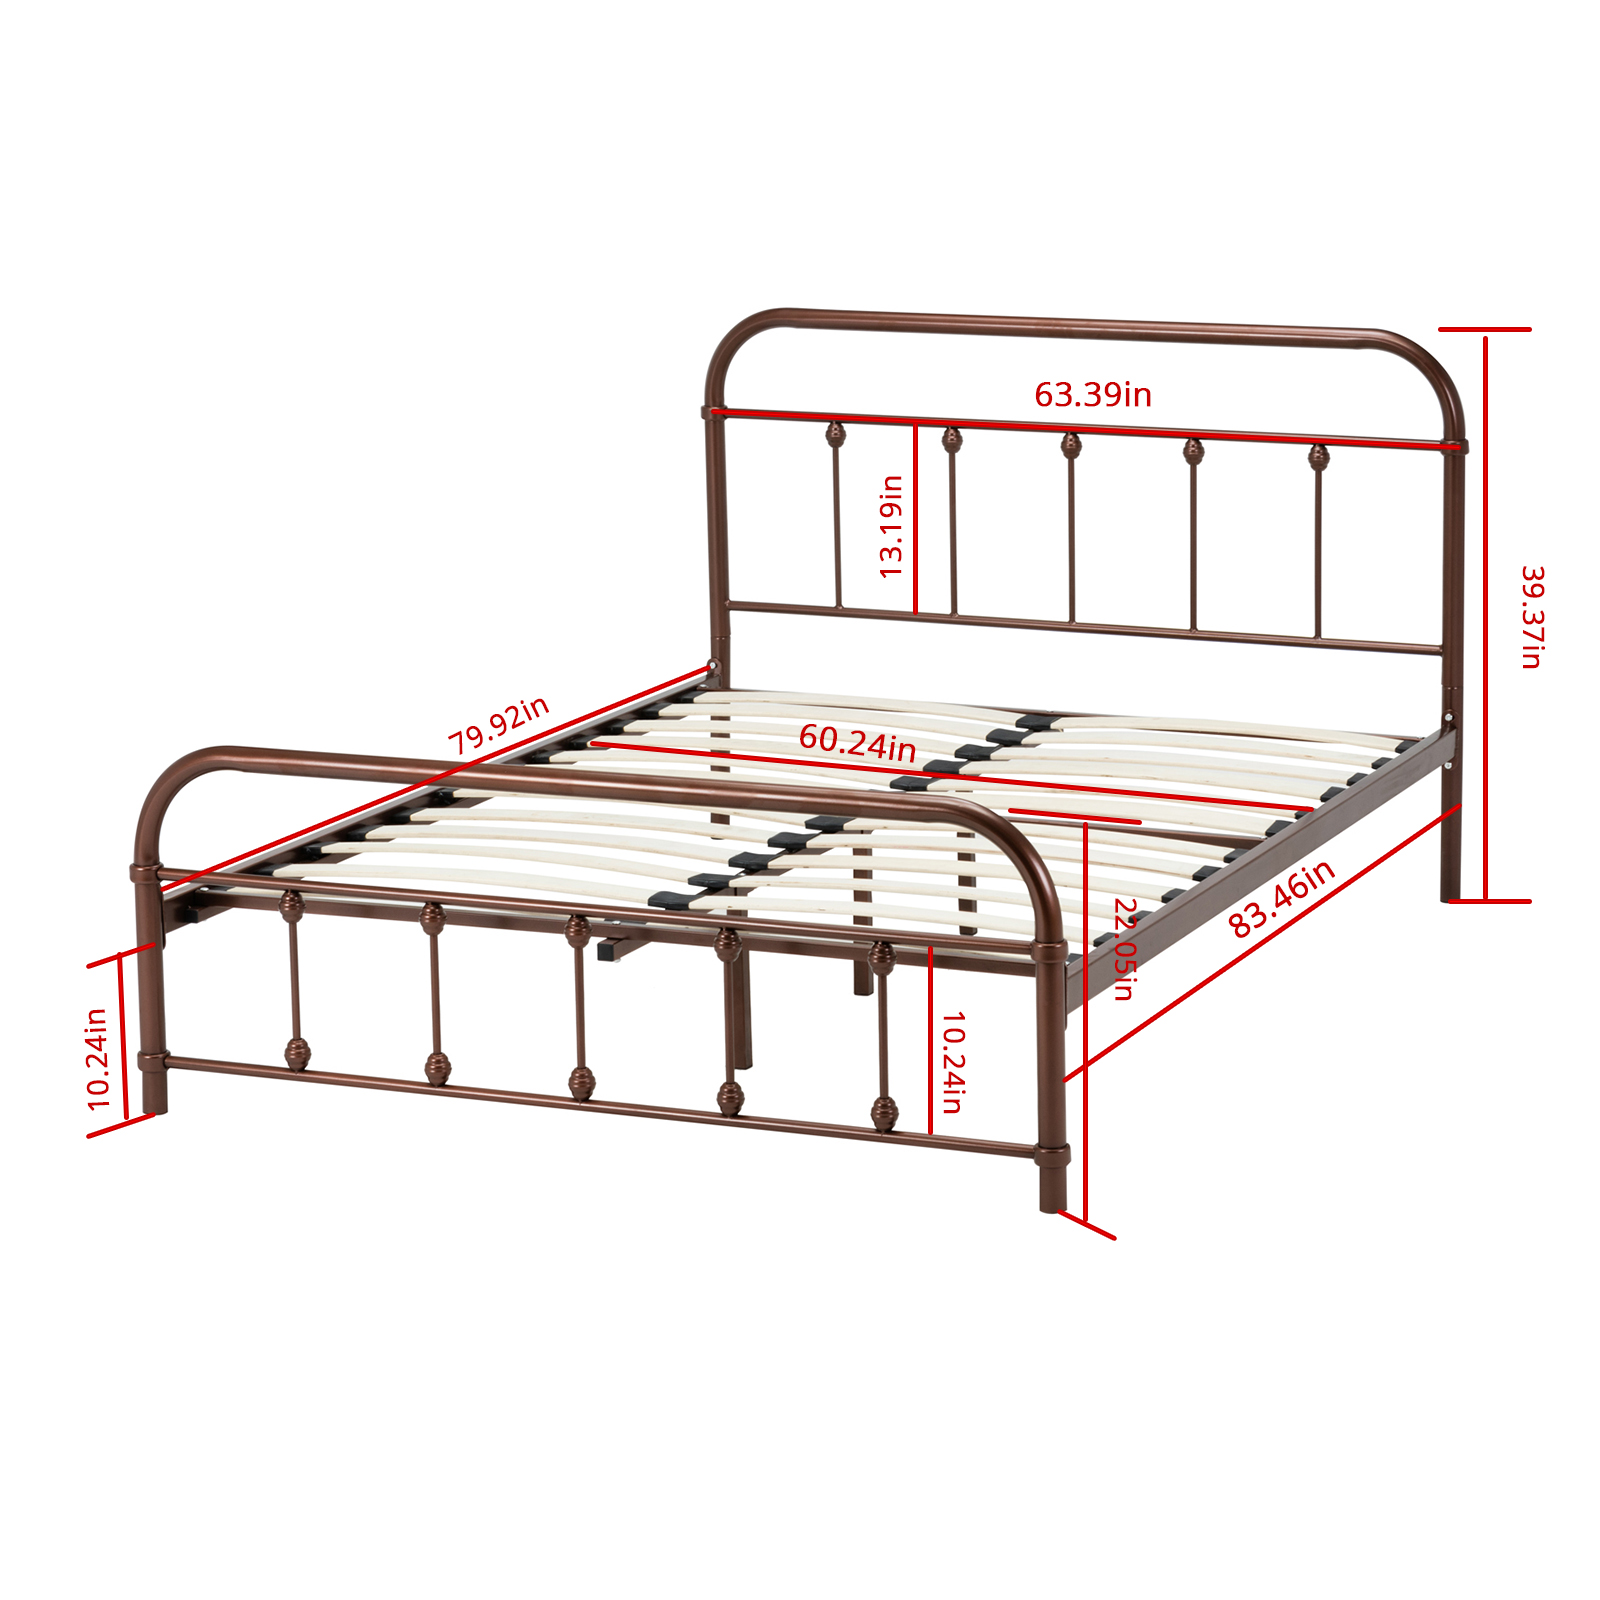 queen size metal bed frame platform slat furniture w headboard footboard bedroom ebay. Black Bedroom Furniture Sets. Home Design Ideas